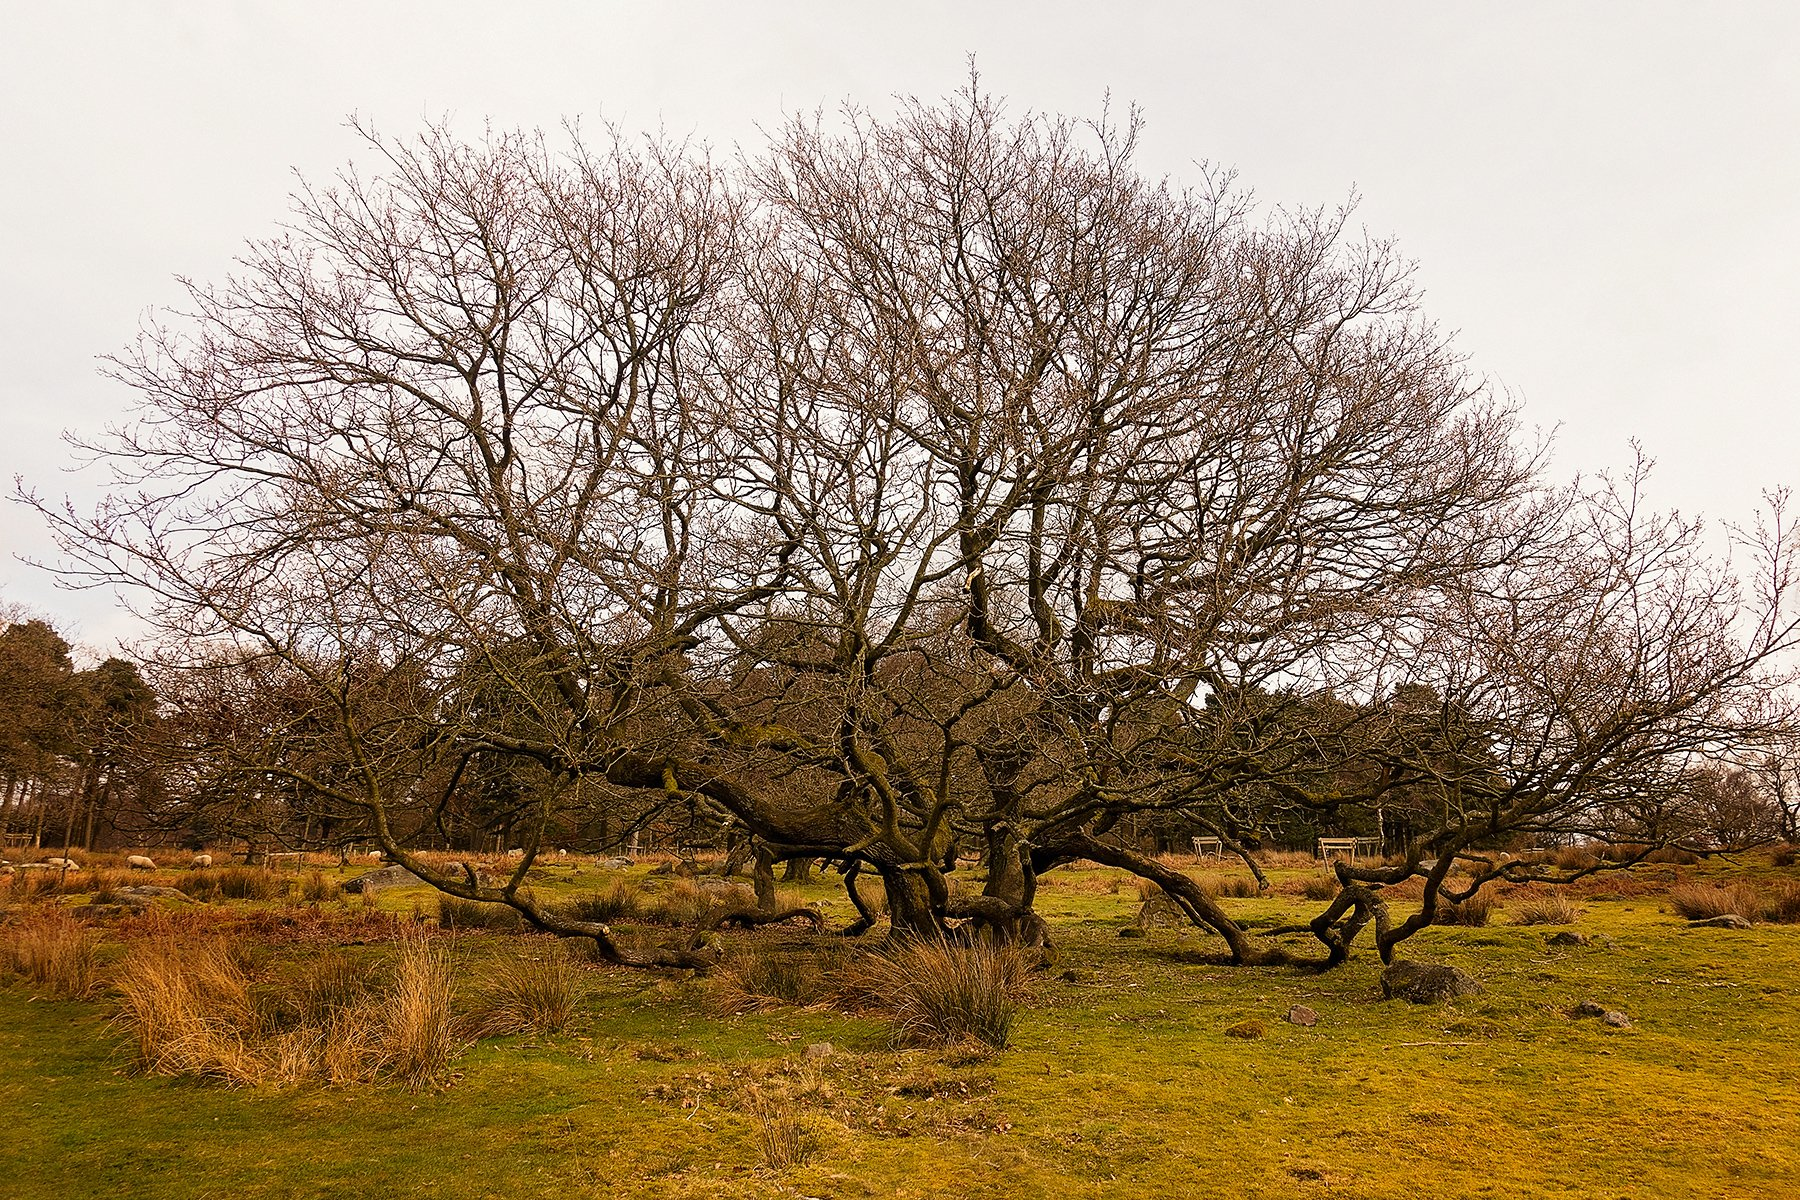 Two trees in Longshaw Estate in the Peak District